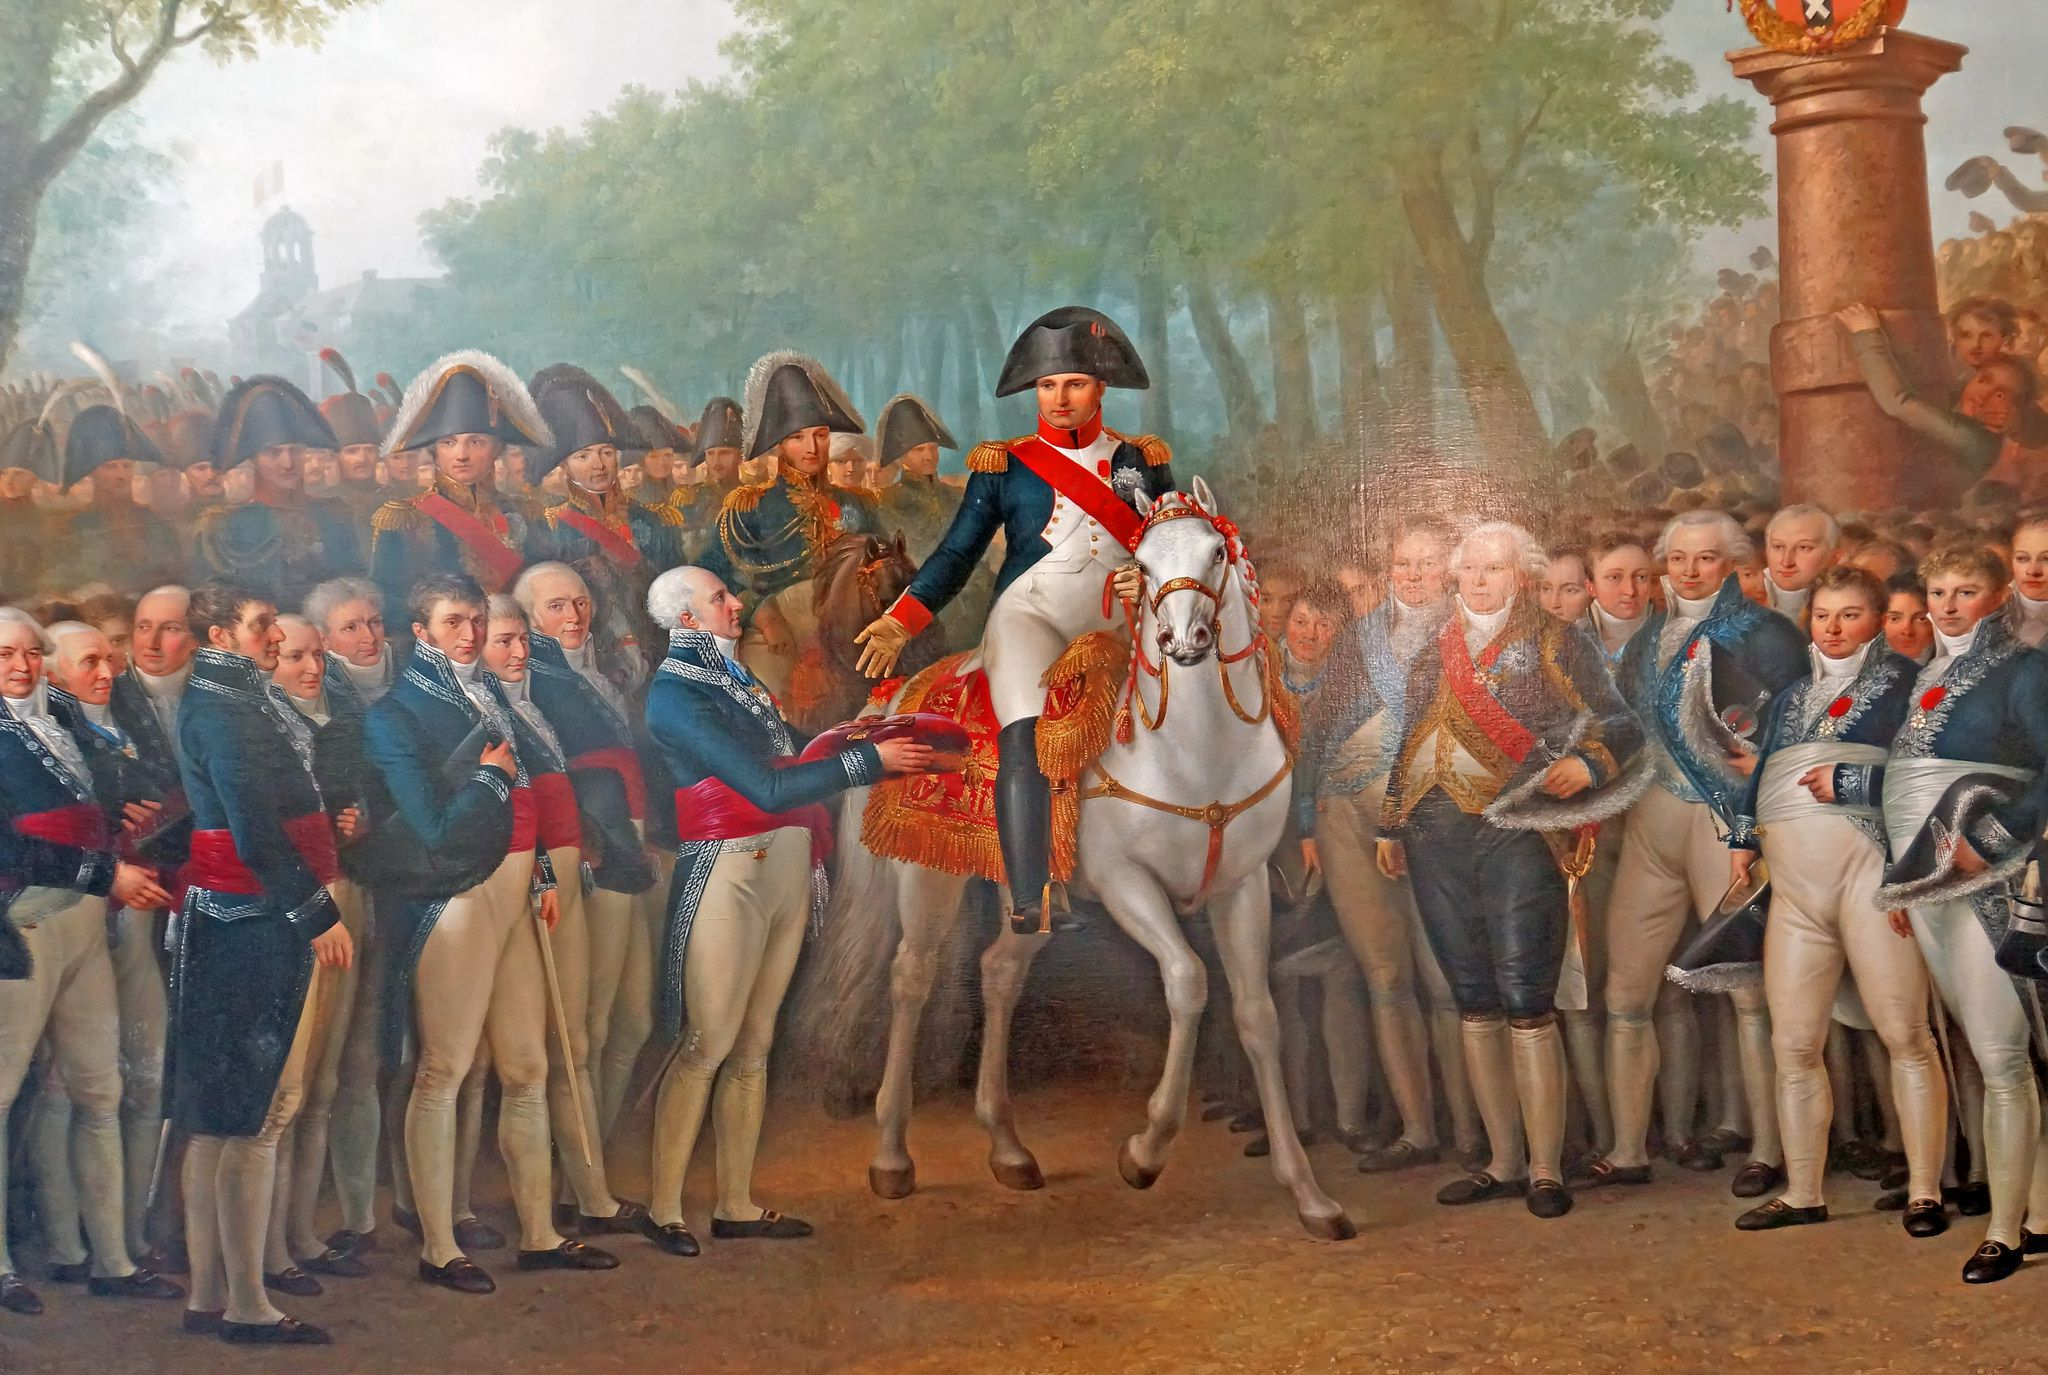 an analysis of the political history of napoleon bonaparte one of the greatest military masterminds Austerlitz, borodino, waterloo: his battles are among the greatest in history, but napoleon bonaparte was far more than a military genius and astute leader of men like george washington and his own hero julius caesar, he was one of the greatest soldier-statesmen of all times.